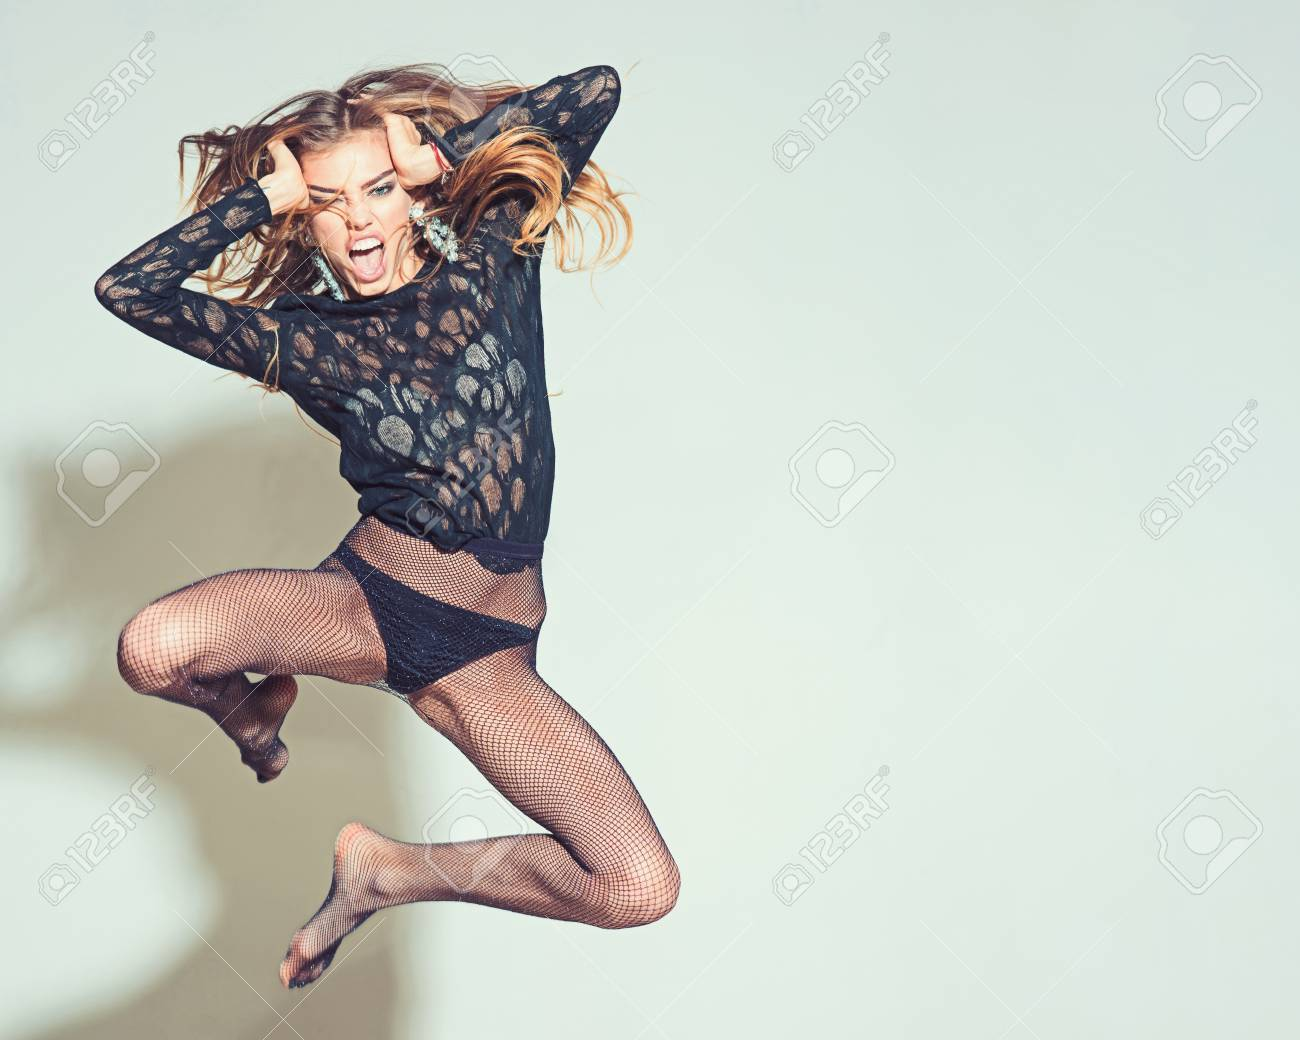 Young Beautiful Jumping Woman Model Wearing Tights And Jumping Stock Photo Picture And Royalty Free Image Image 118683600 By placing a query in quotation marks pantyhose you can find a complete match. young beautiful jumping woman model wearing tights and jumping